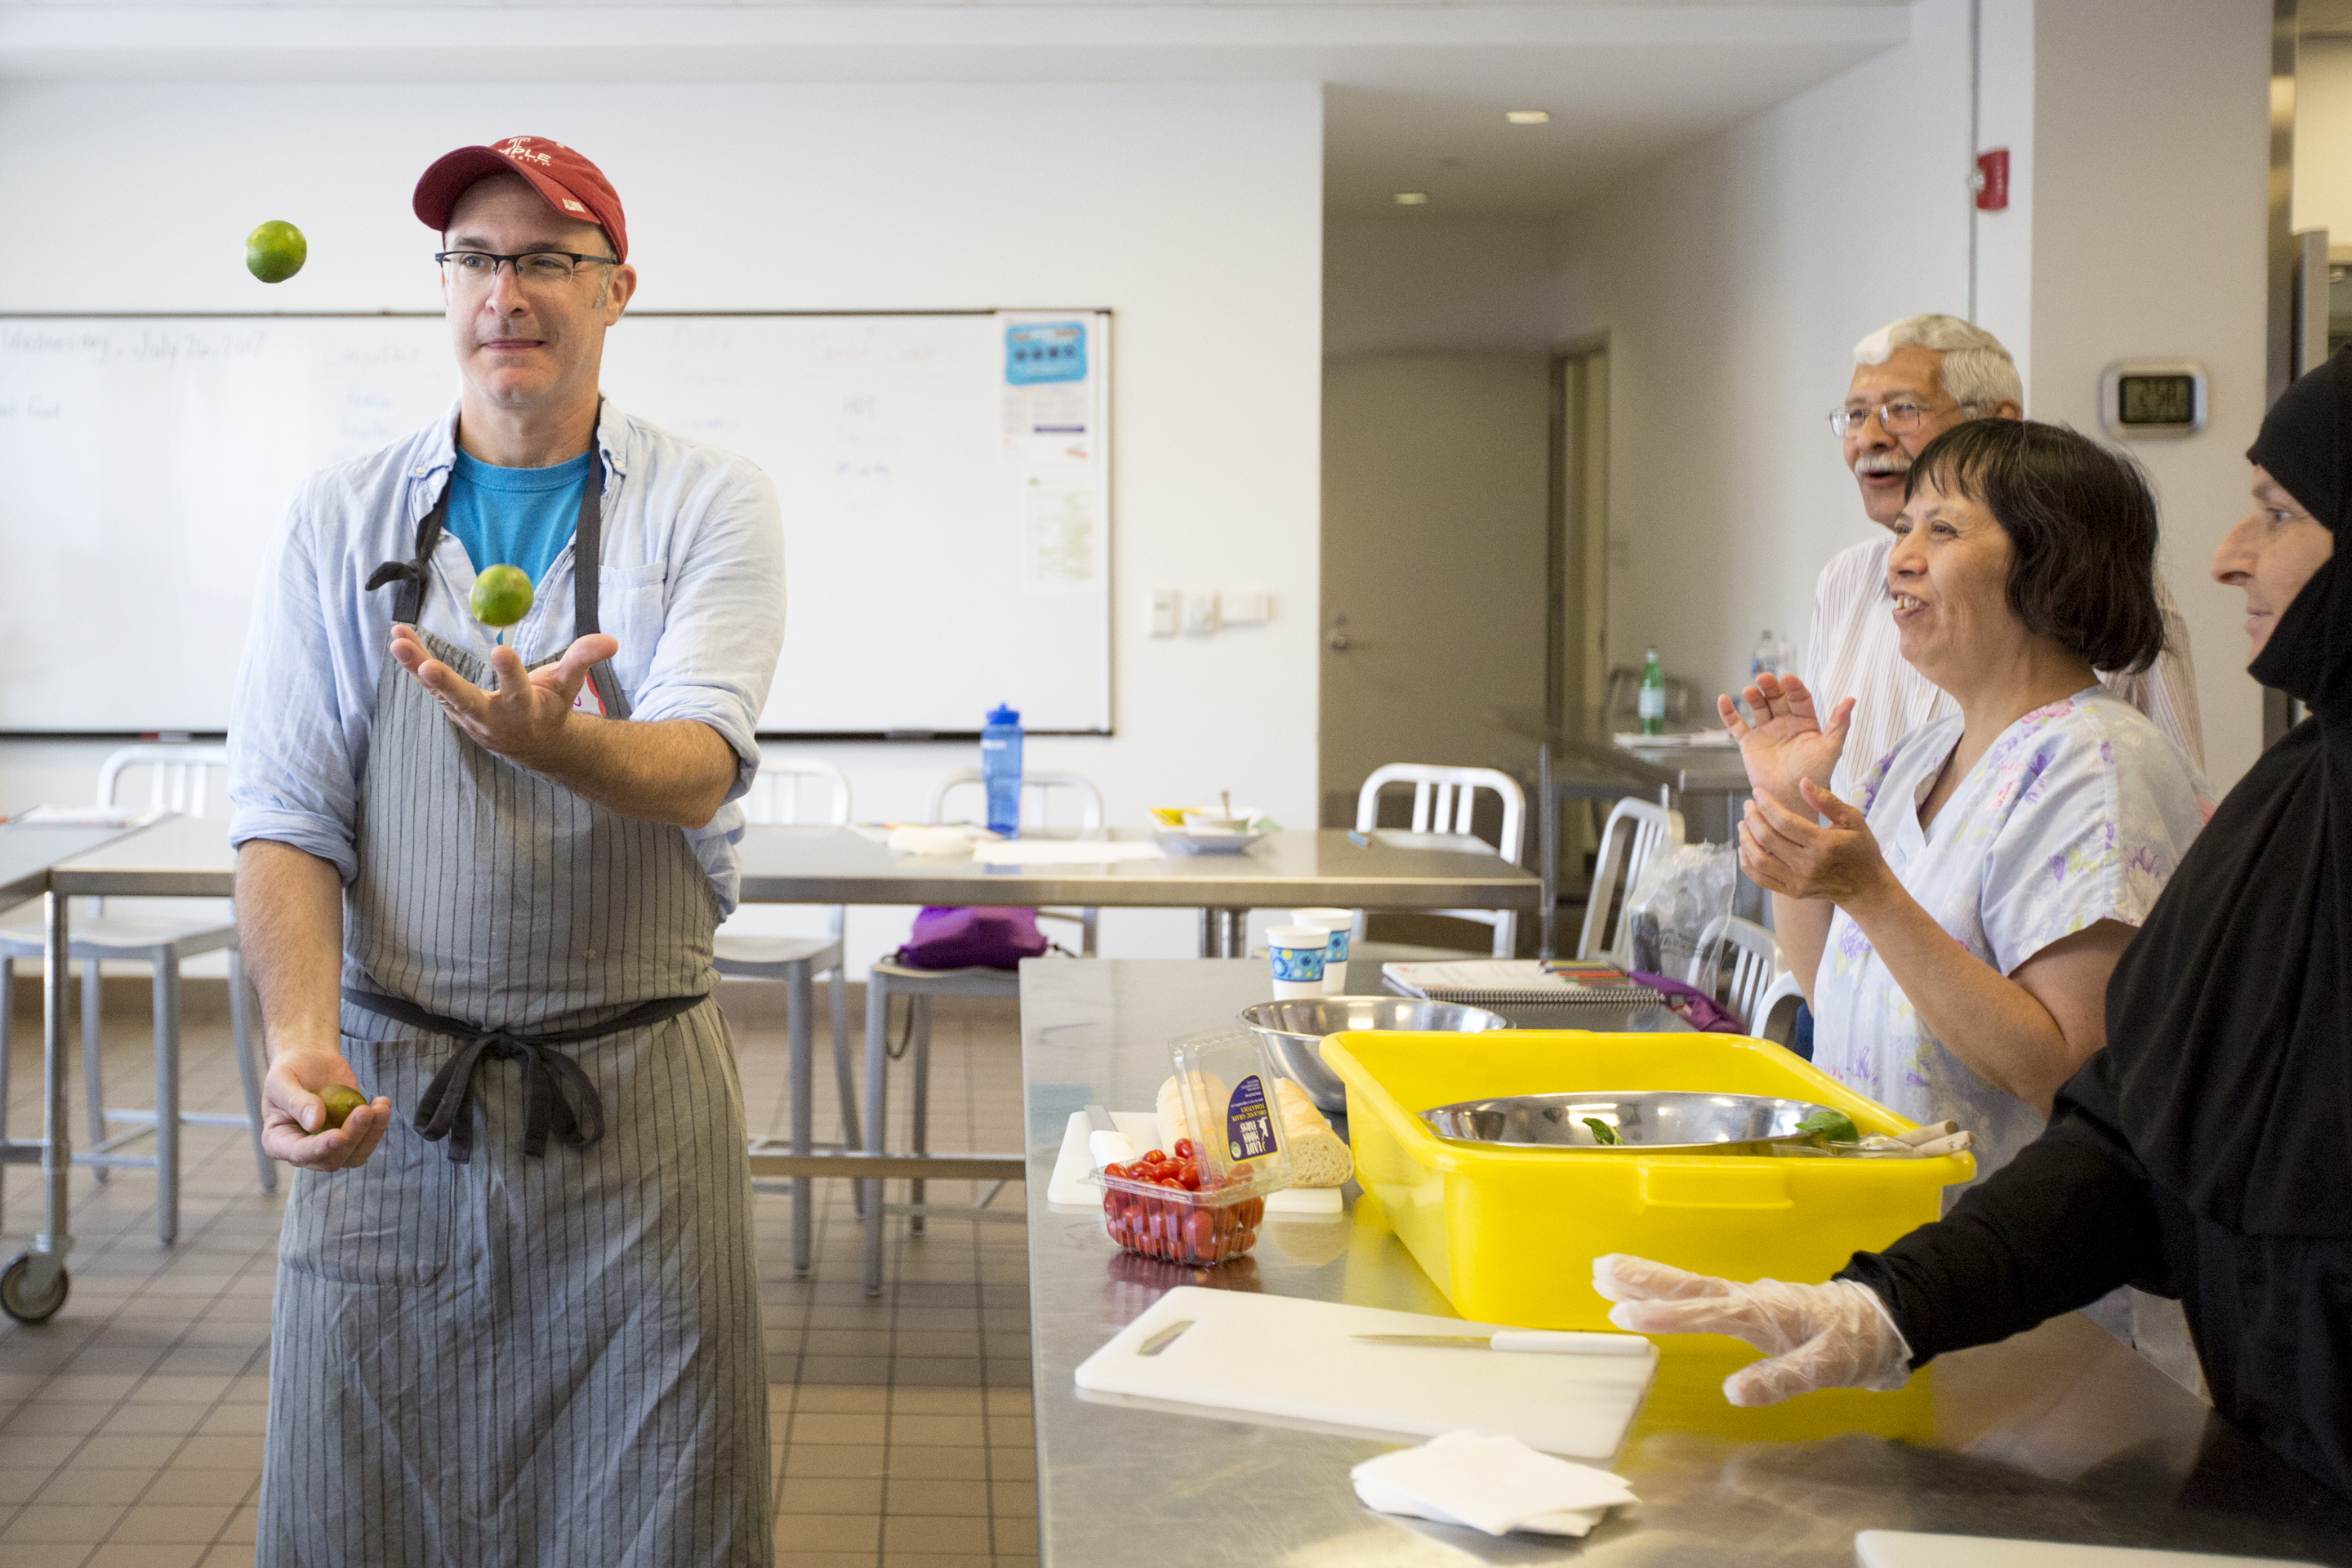 Jameson O´Donnell, a chef instructor, juggles limes before starting the ESL cooking class at the culinary learning center in the Free Library on Vine Street Wednesday, July 26, 2017. Immigrants from around the world sign up for the class to enhance their English skills through cooking and talking about food.